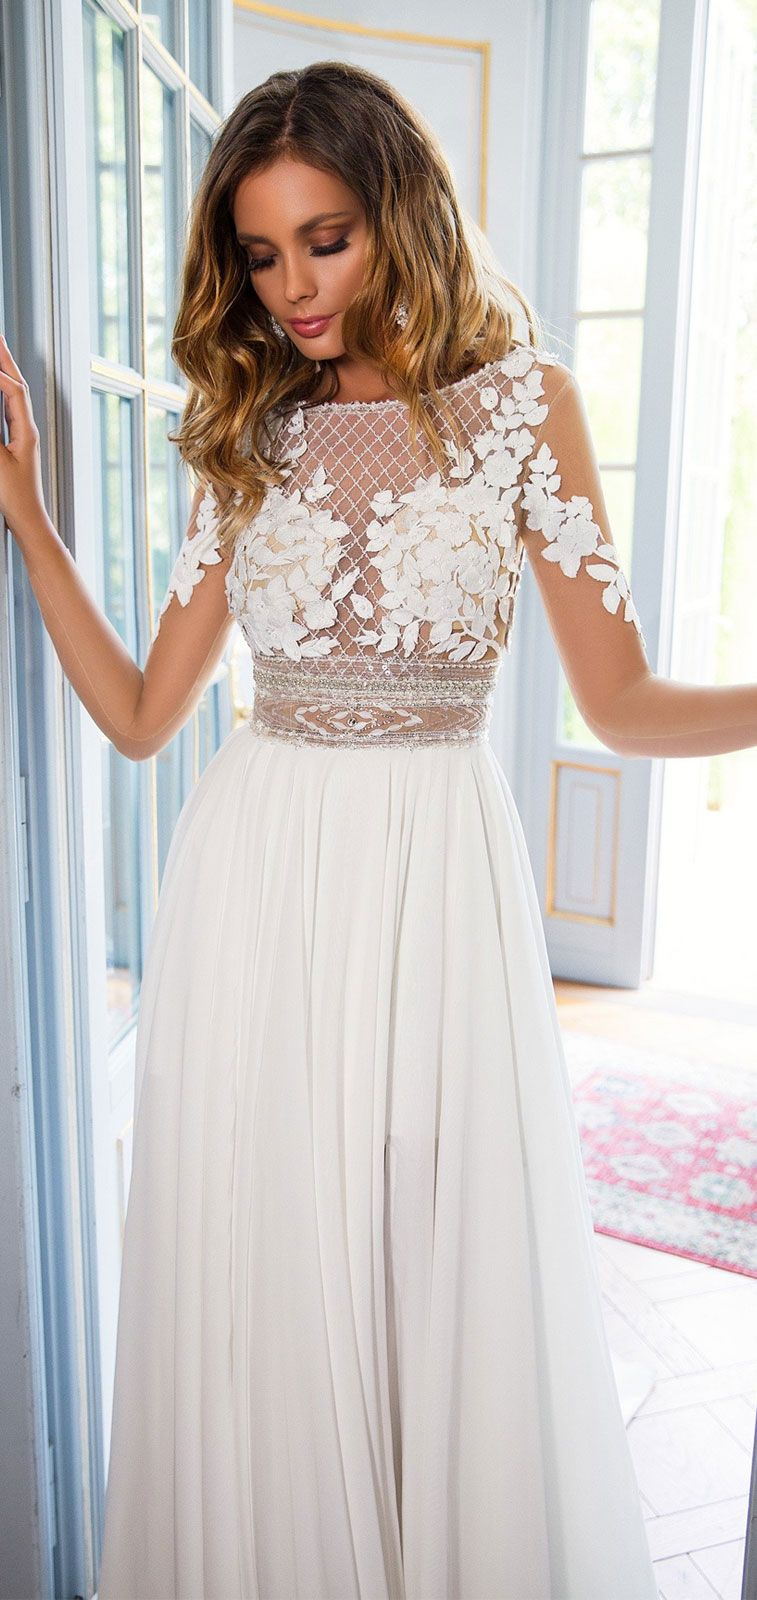 Illusion Long sleeves round neck heavy embellishment a line wedding dress #weddingdress #bridedress #weddinggown